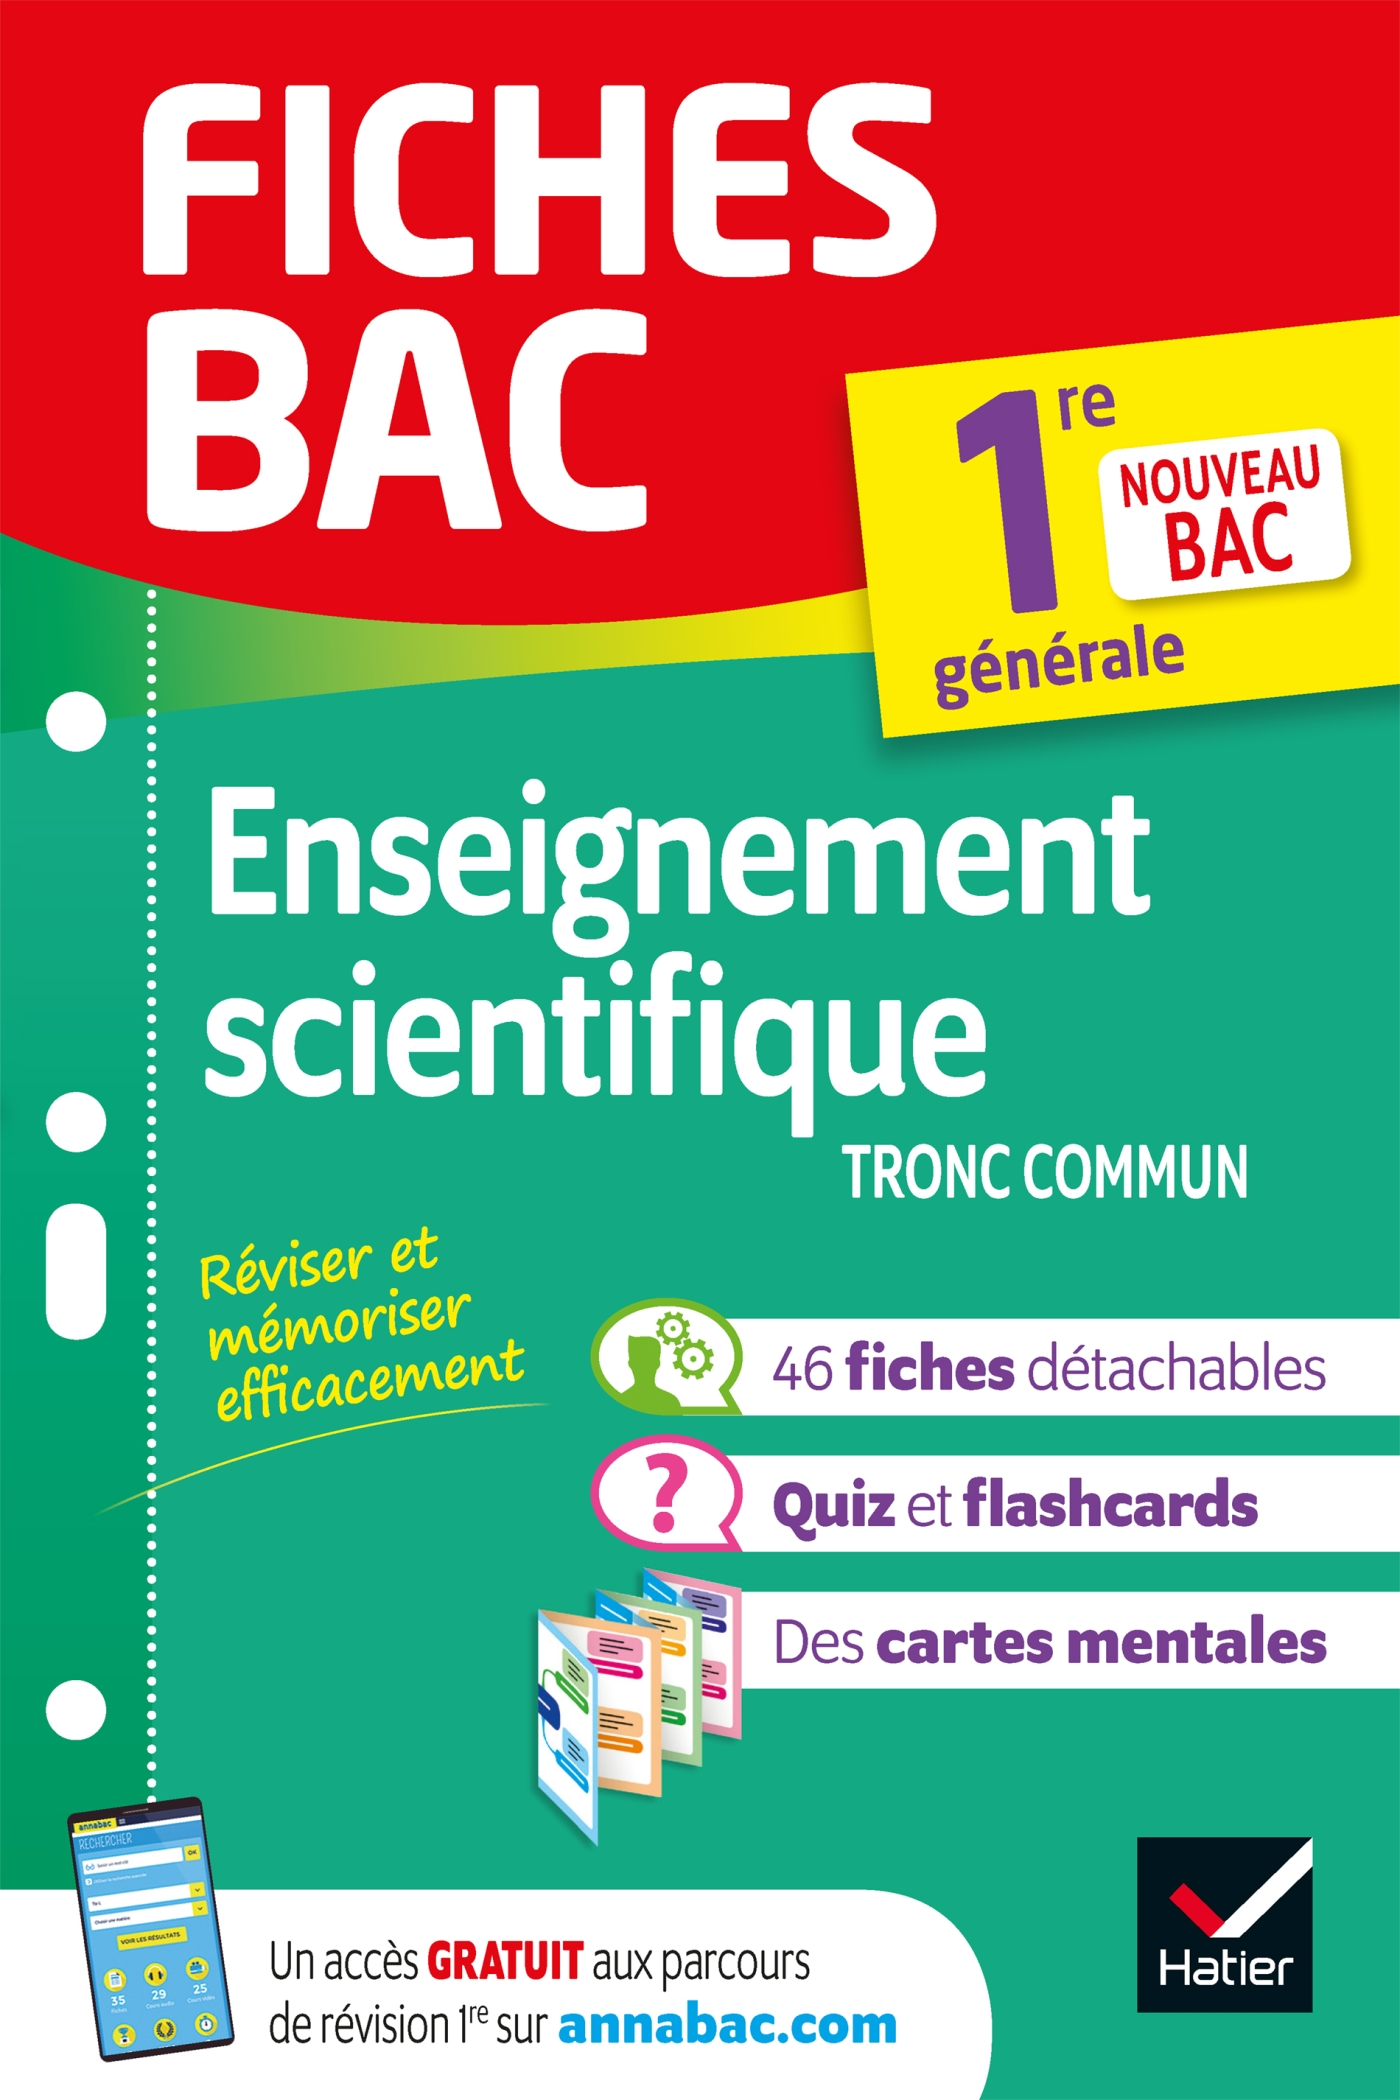 Fiches bac Enseignement scientifique 1re (tronc commun)